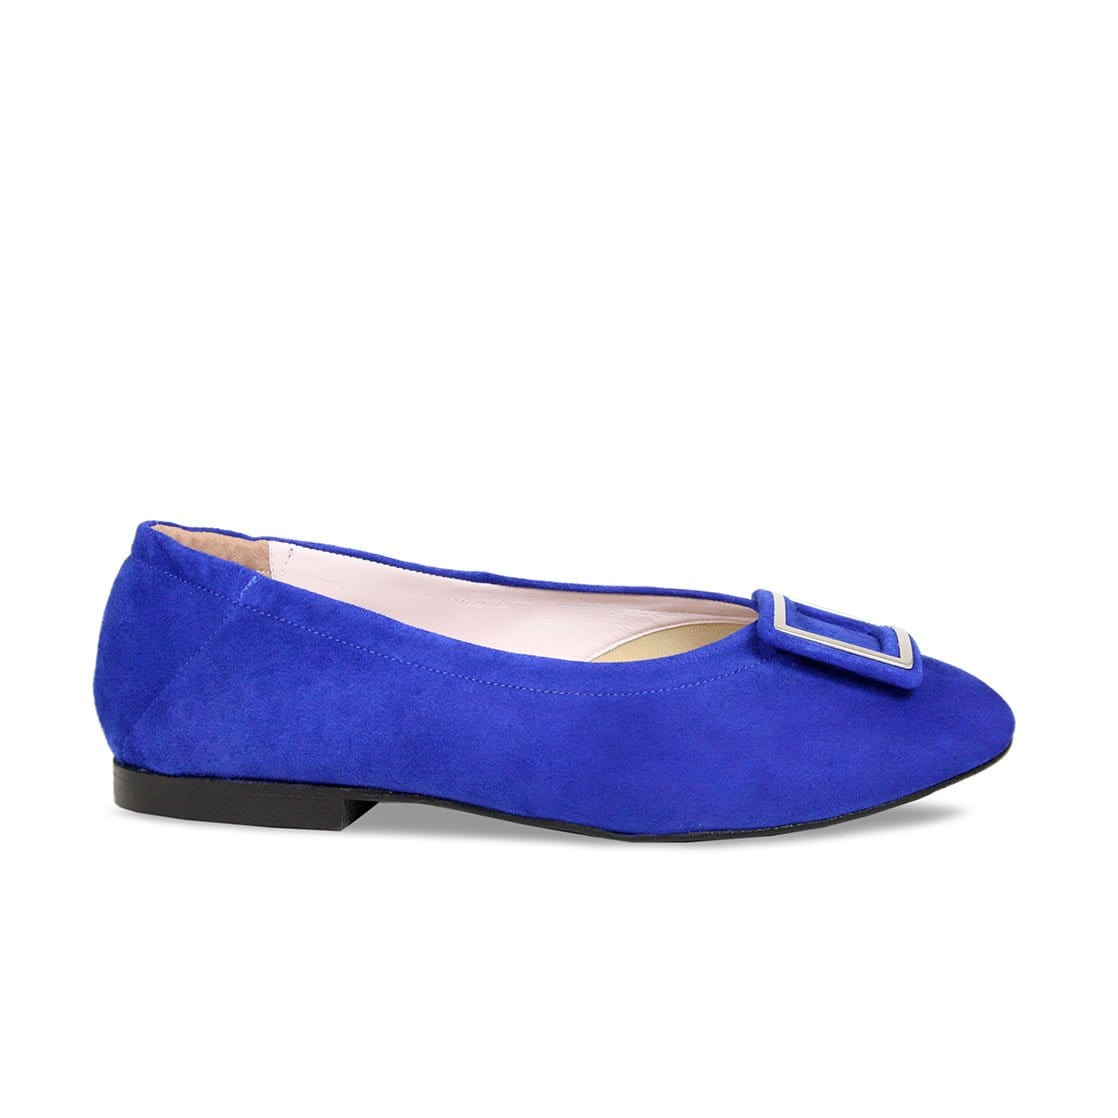 Royal Blue Suede Ballerinas with Buckle